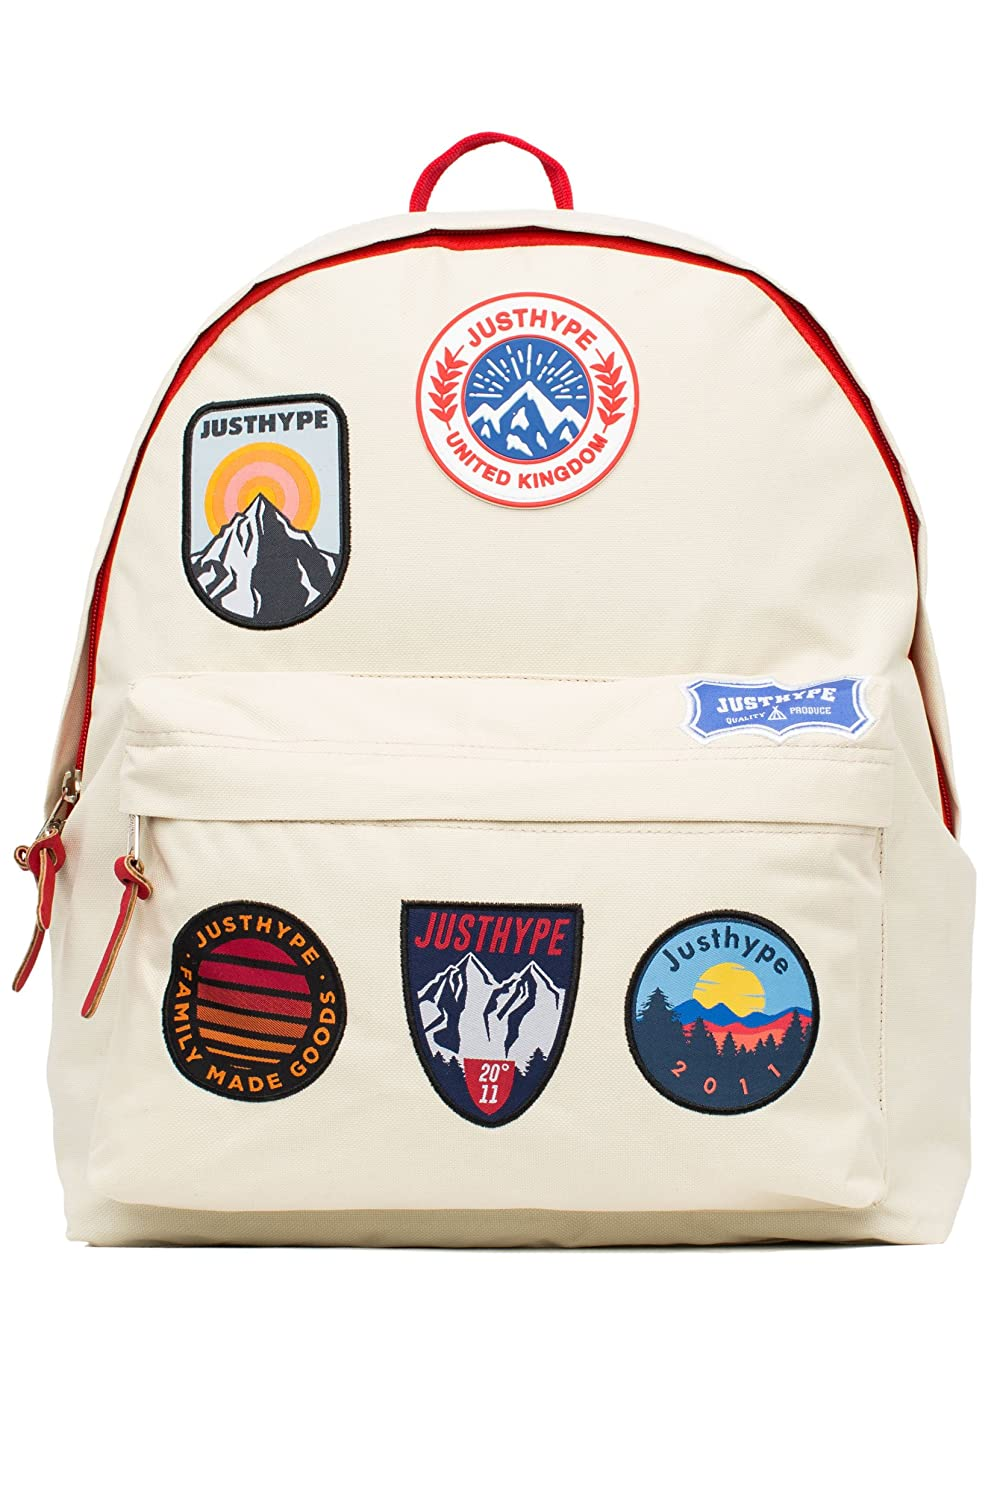 Hype Backpack Rucksack School Bag for Girls Boys  883cb00ed7593